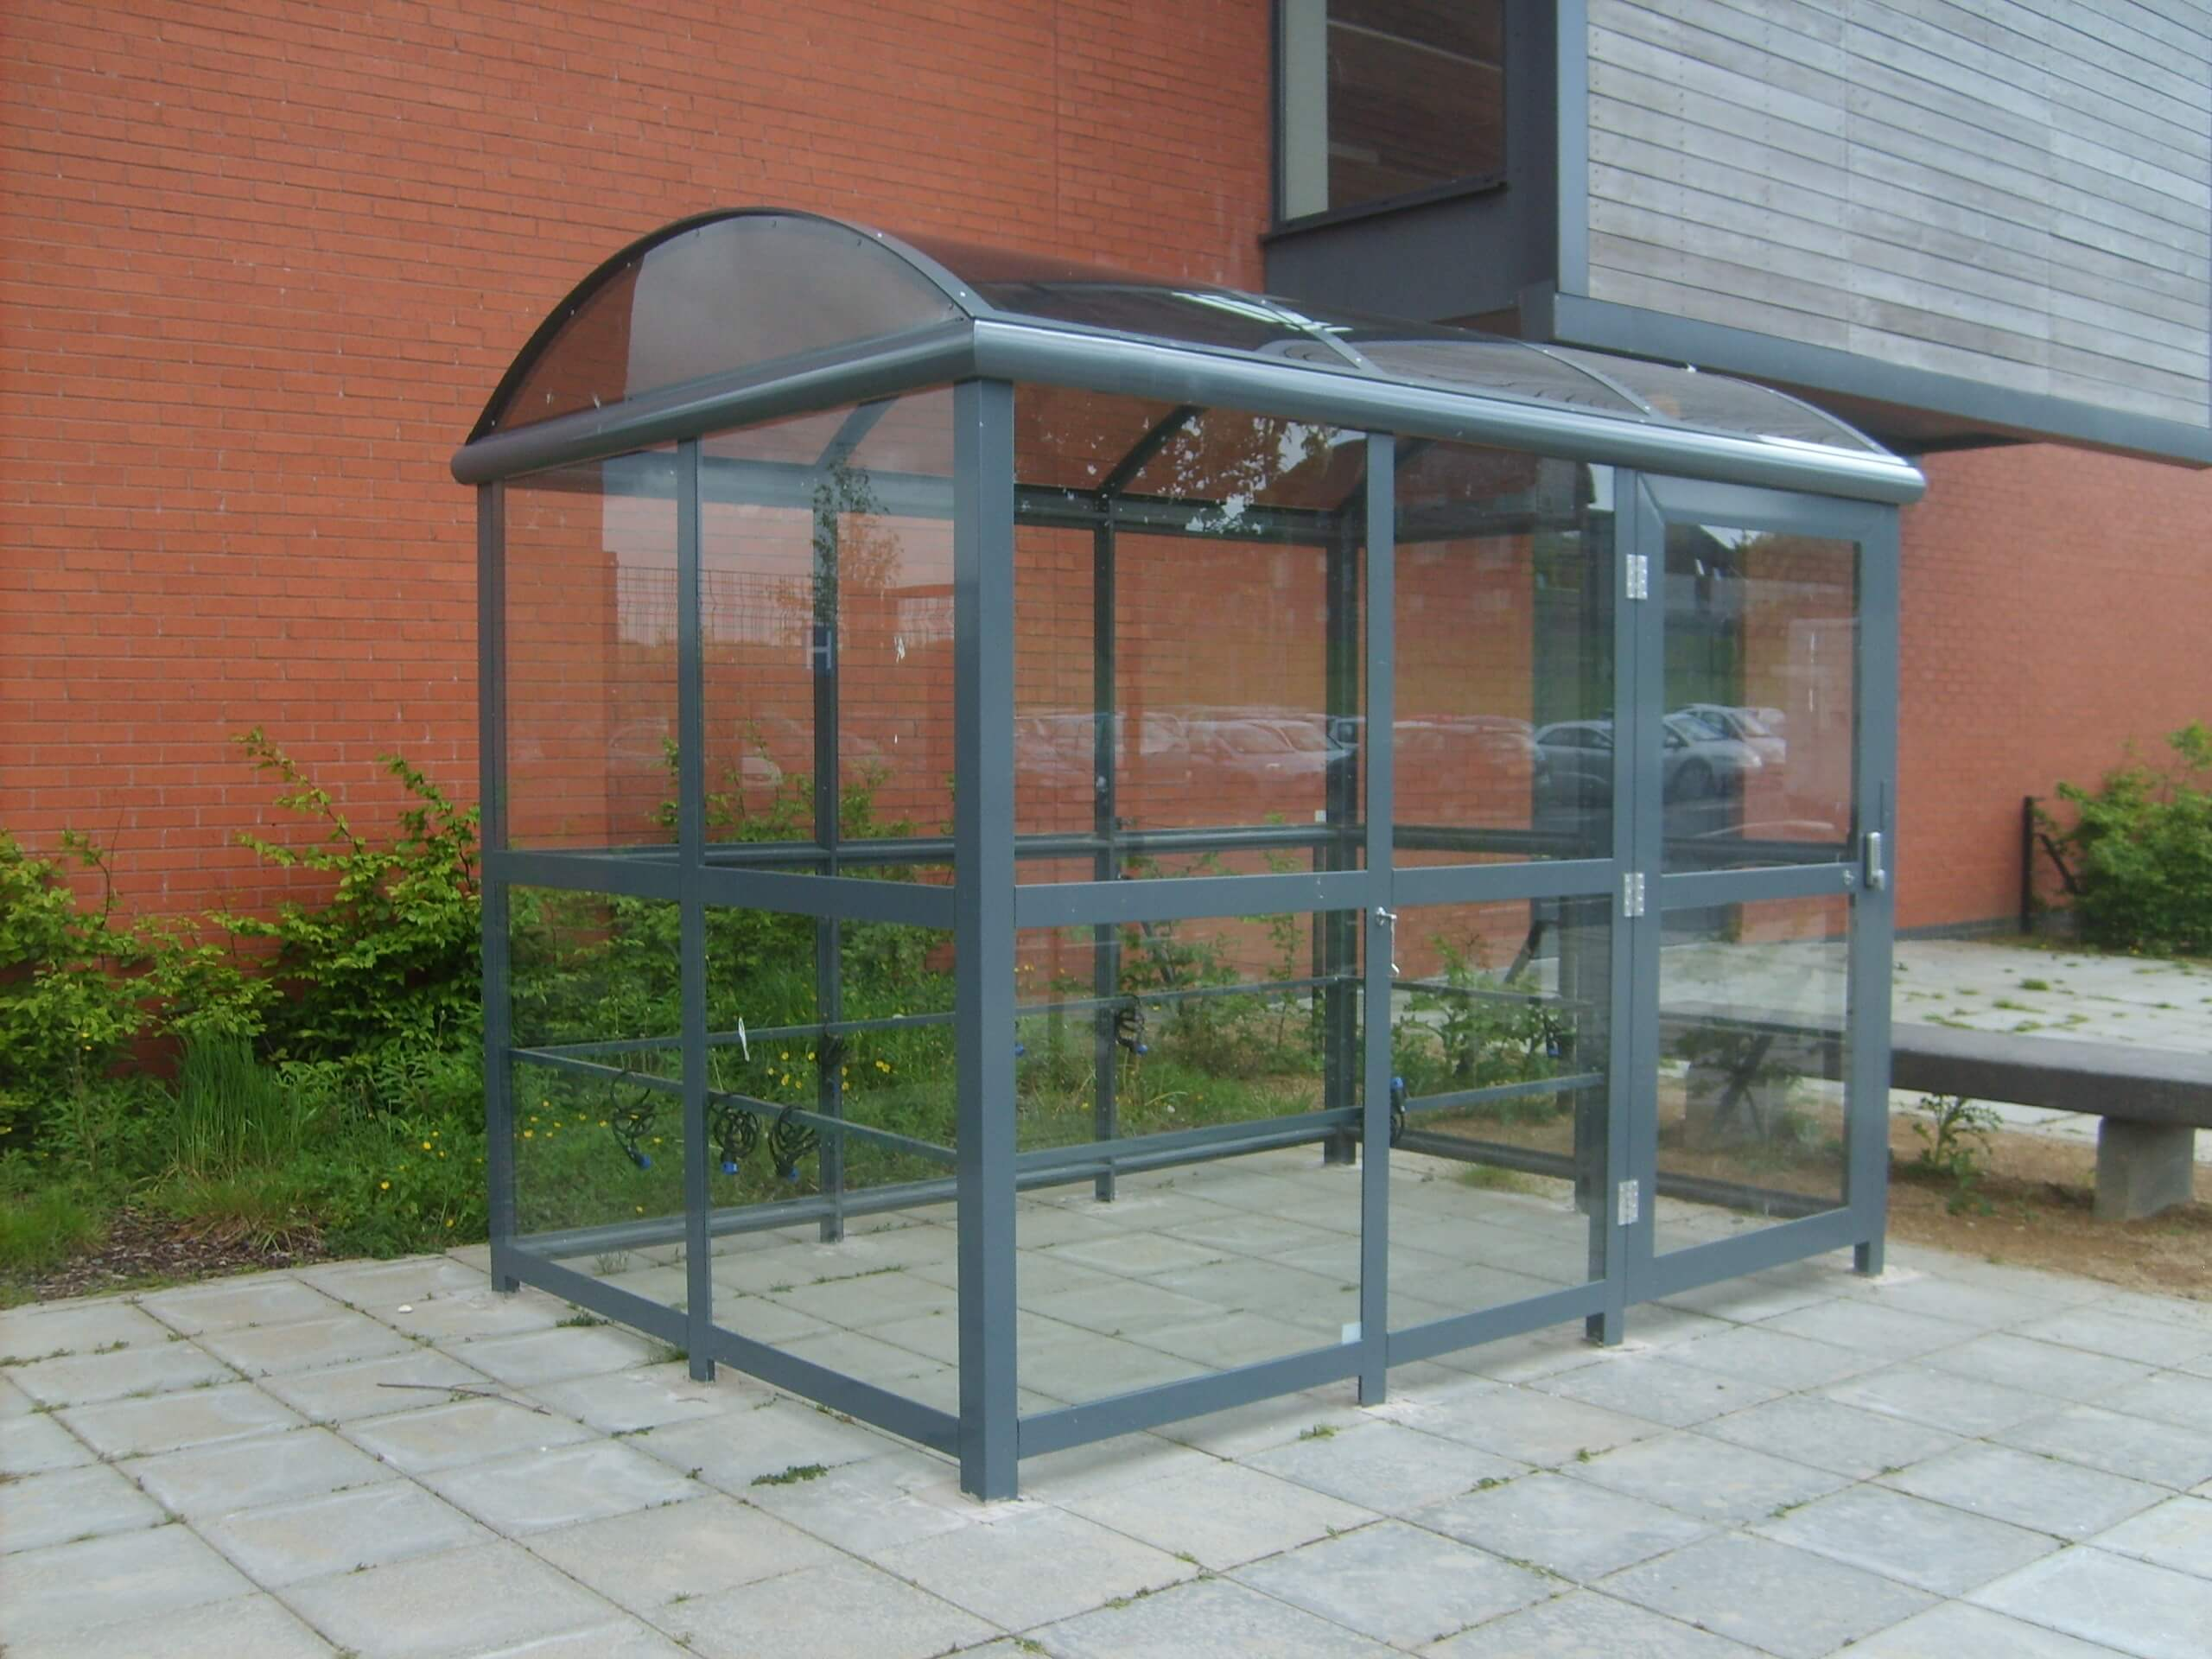 3 Bay 3.06mtr x 2.1mtr Elliptical Pram Shelter with Pin code entry lock